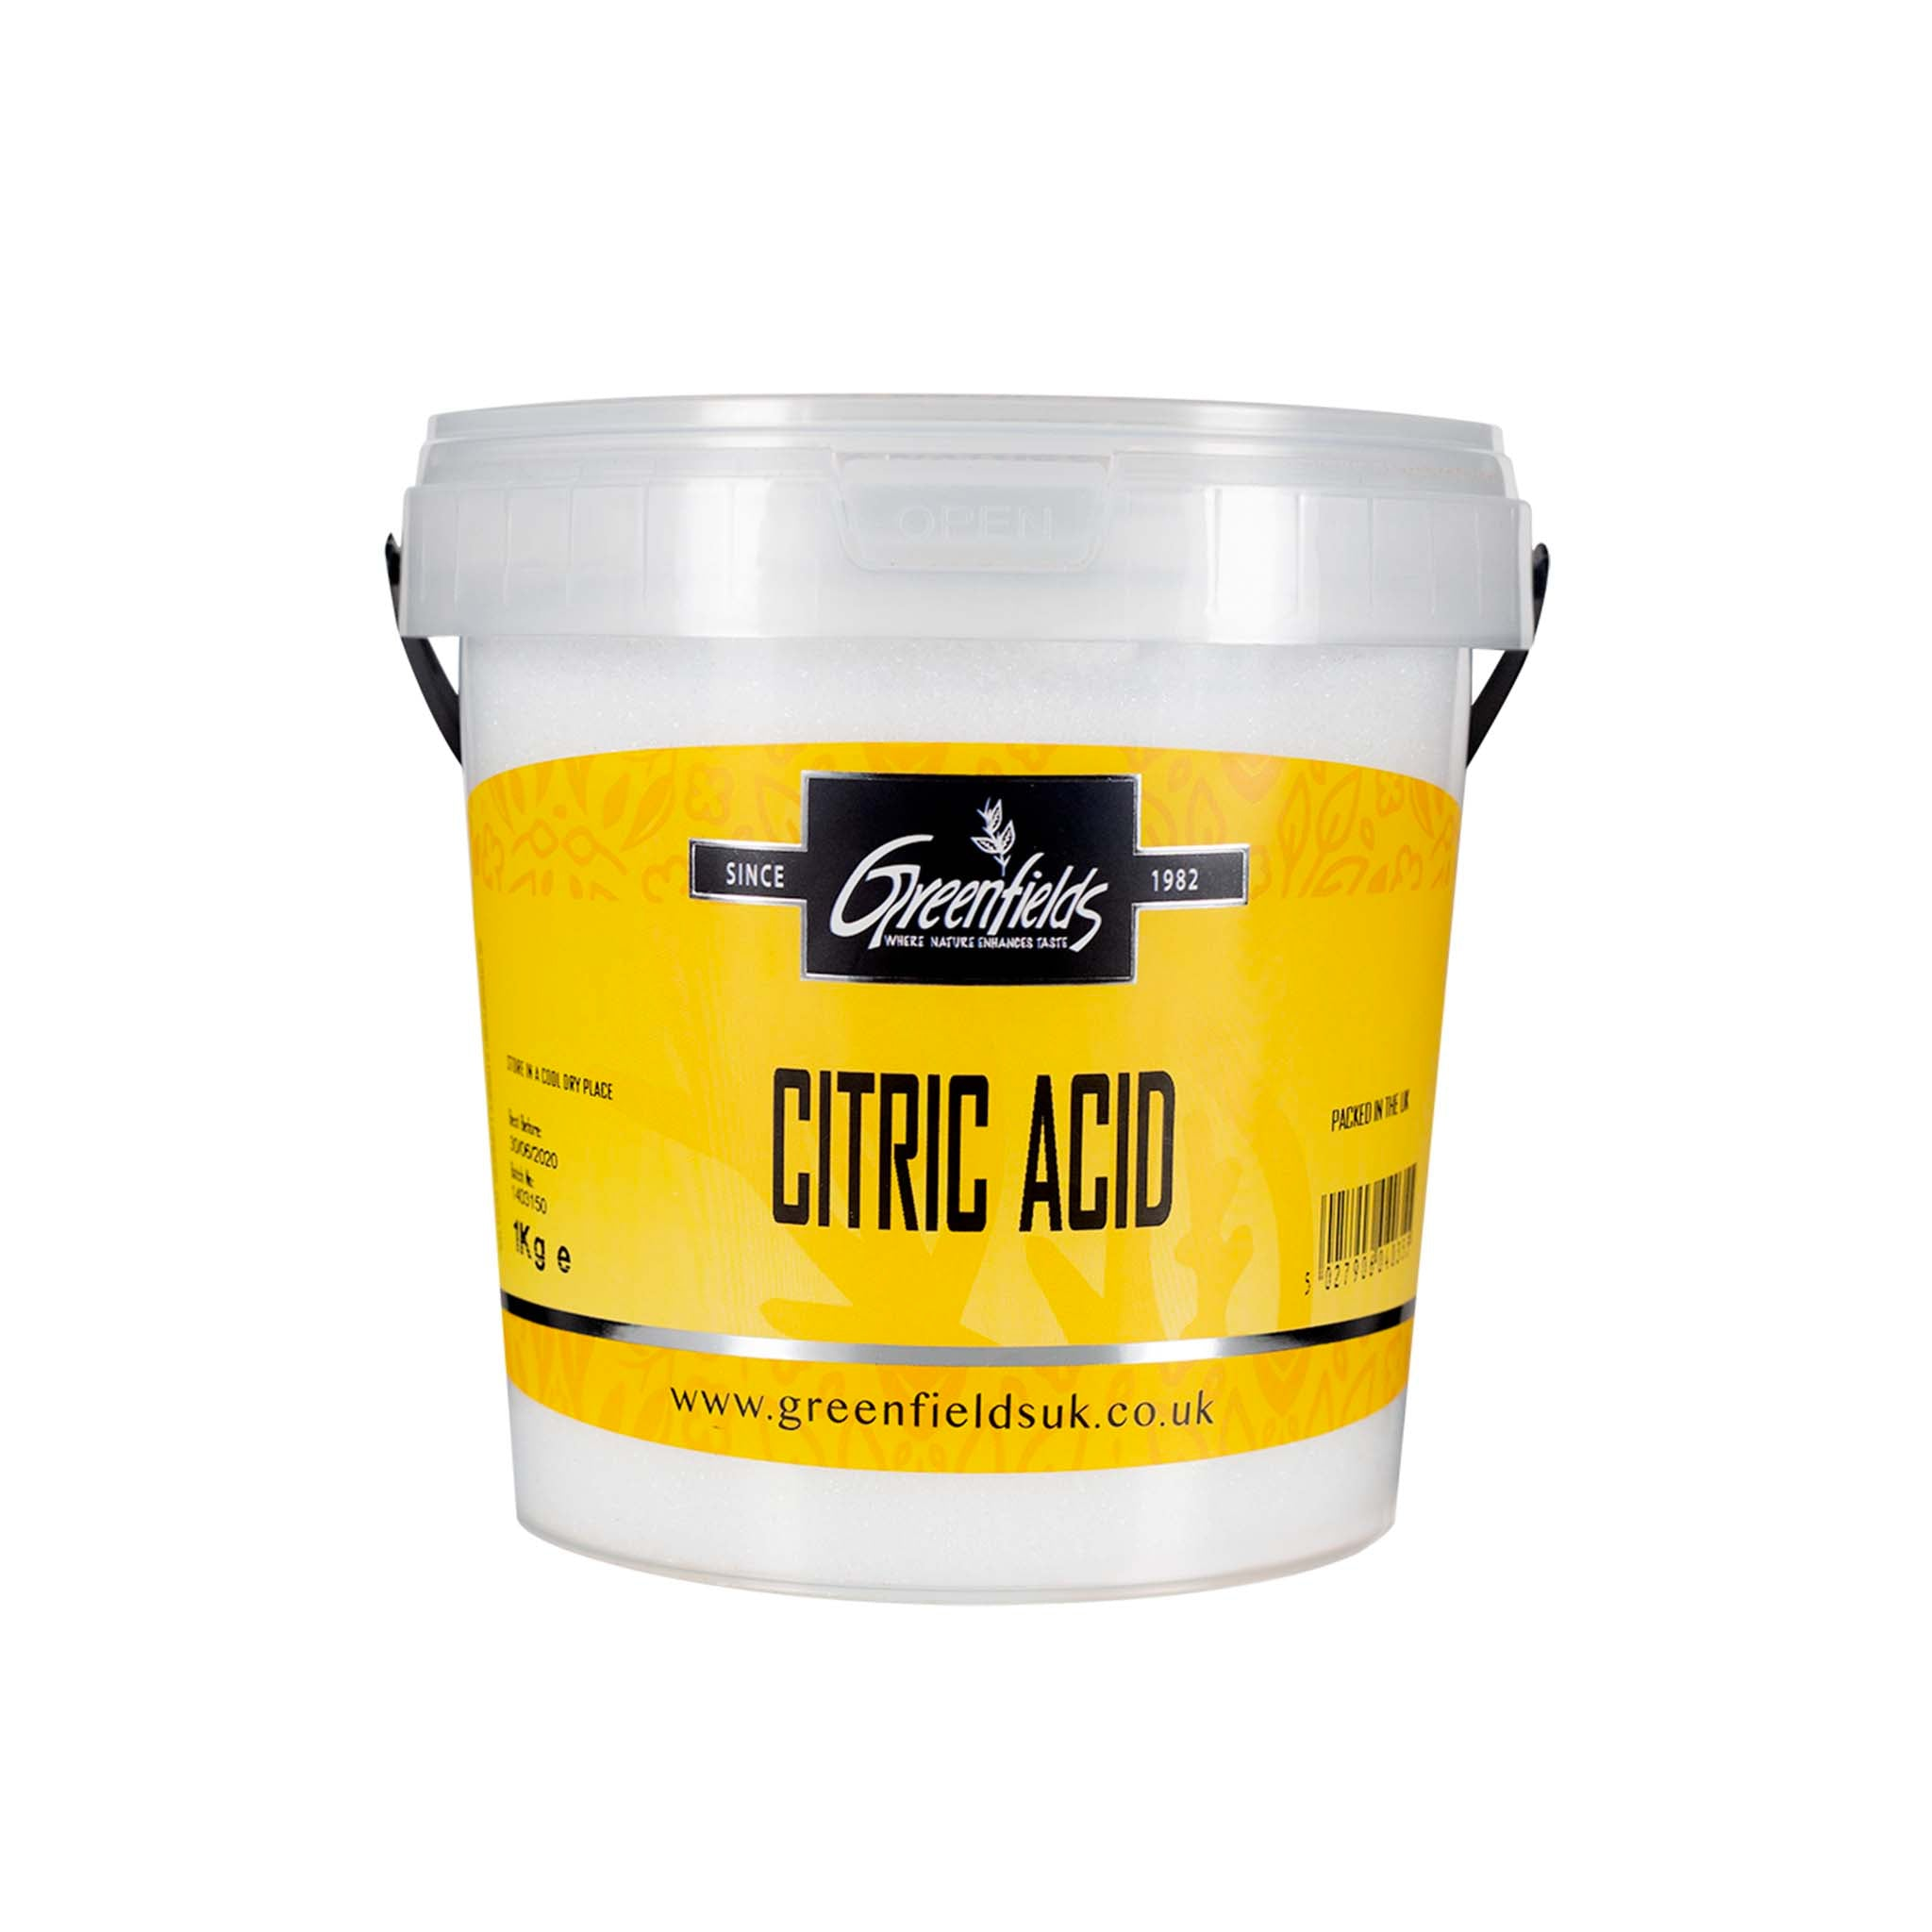 Citric Acid From Greenfields Buy Online Sous Chef Uk